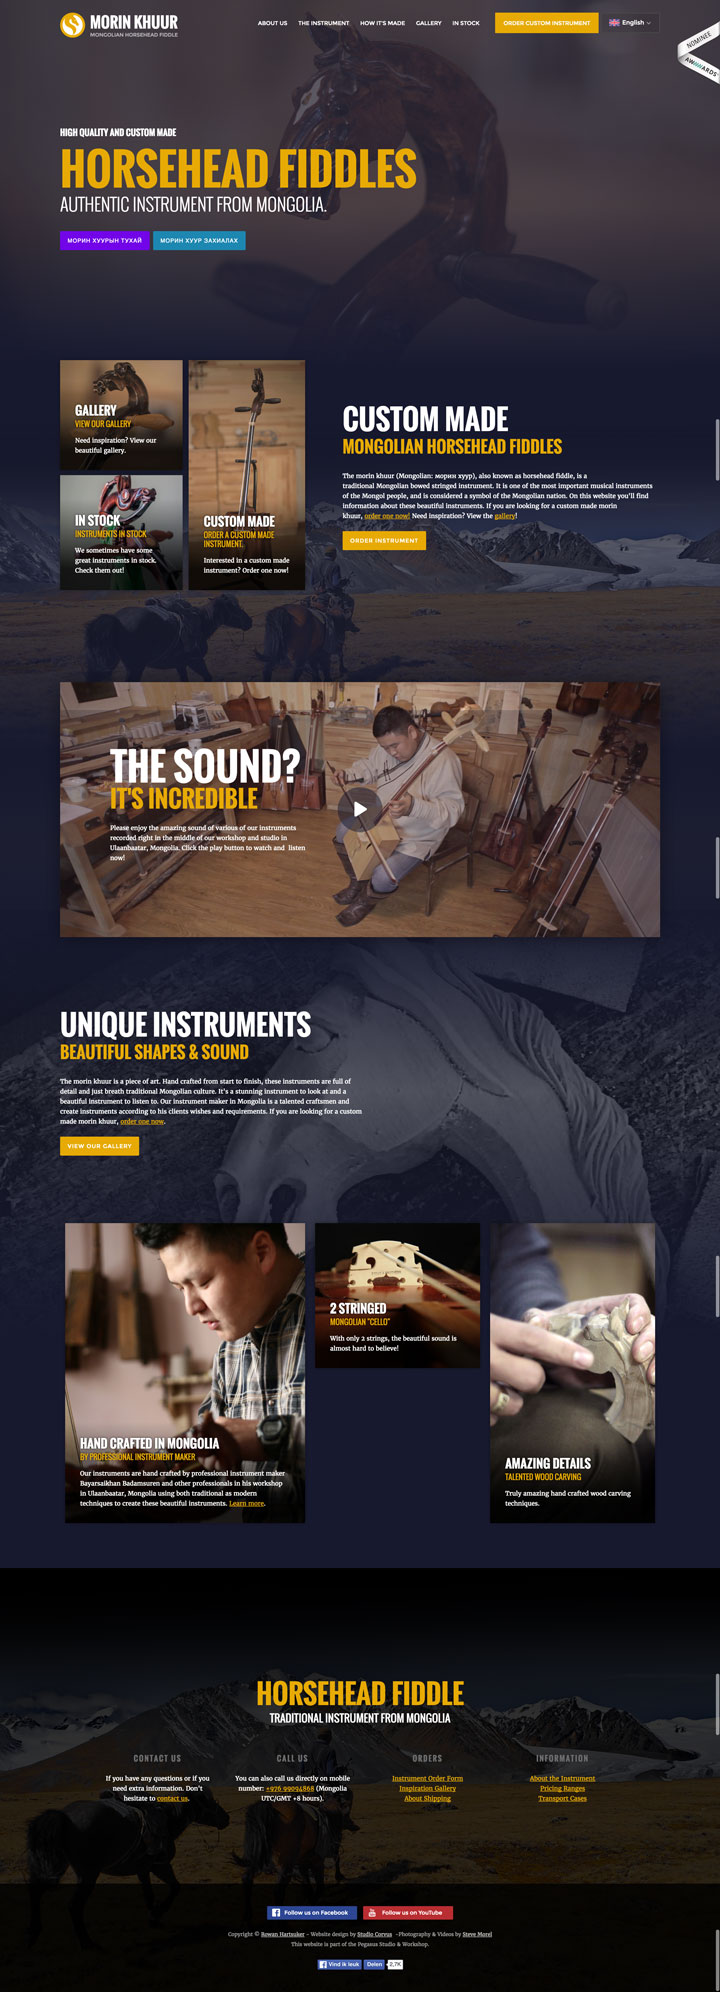 Homepage of the Morin Khuur Horsehead Fiddles website